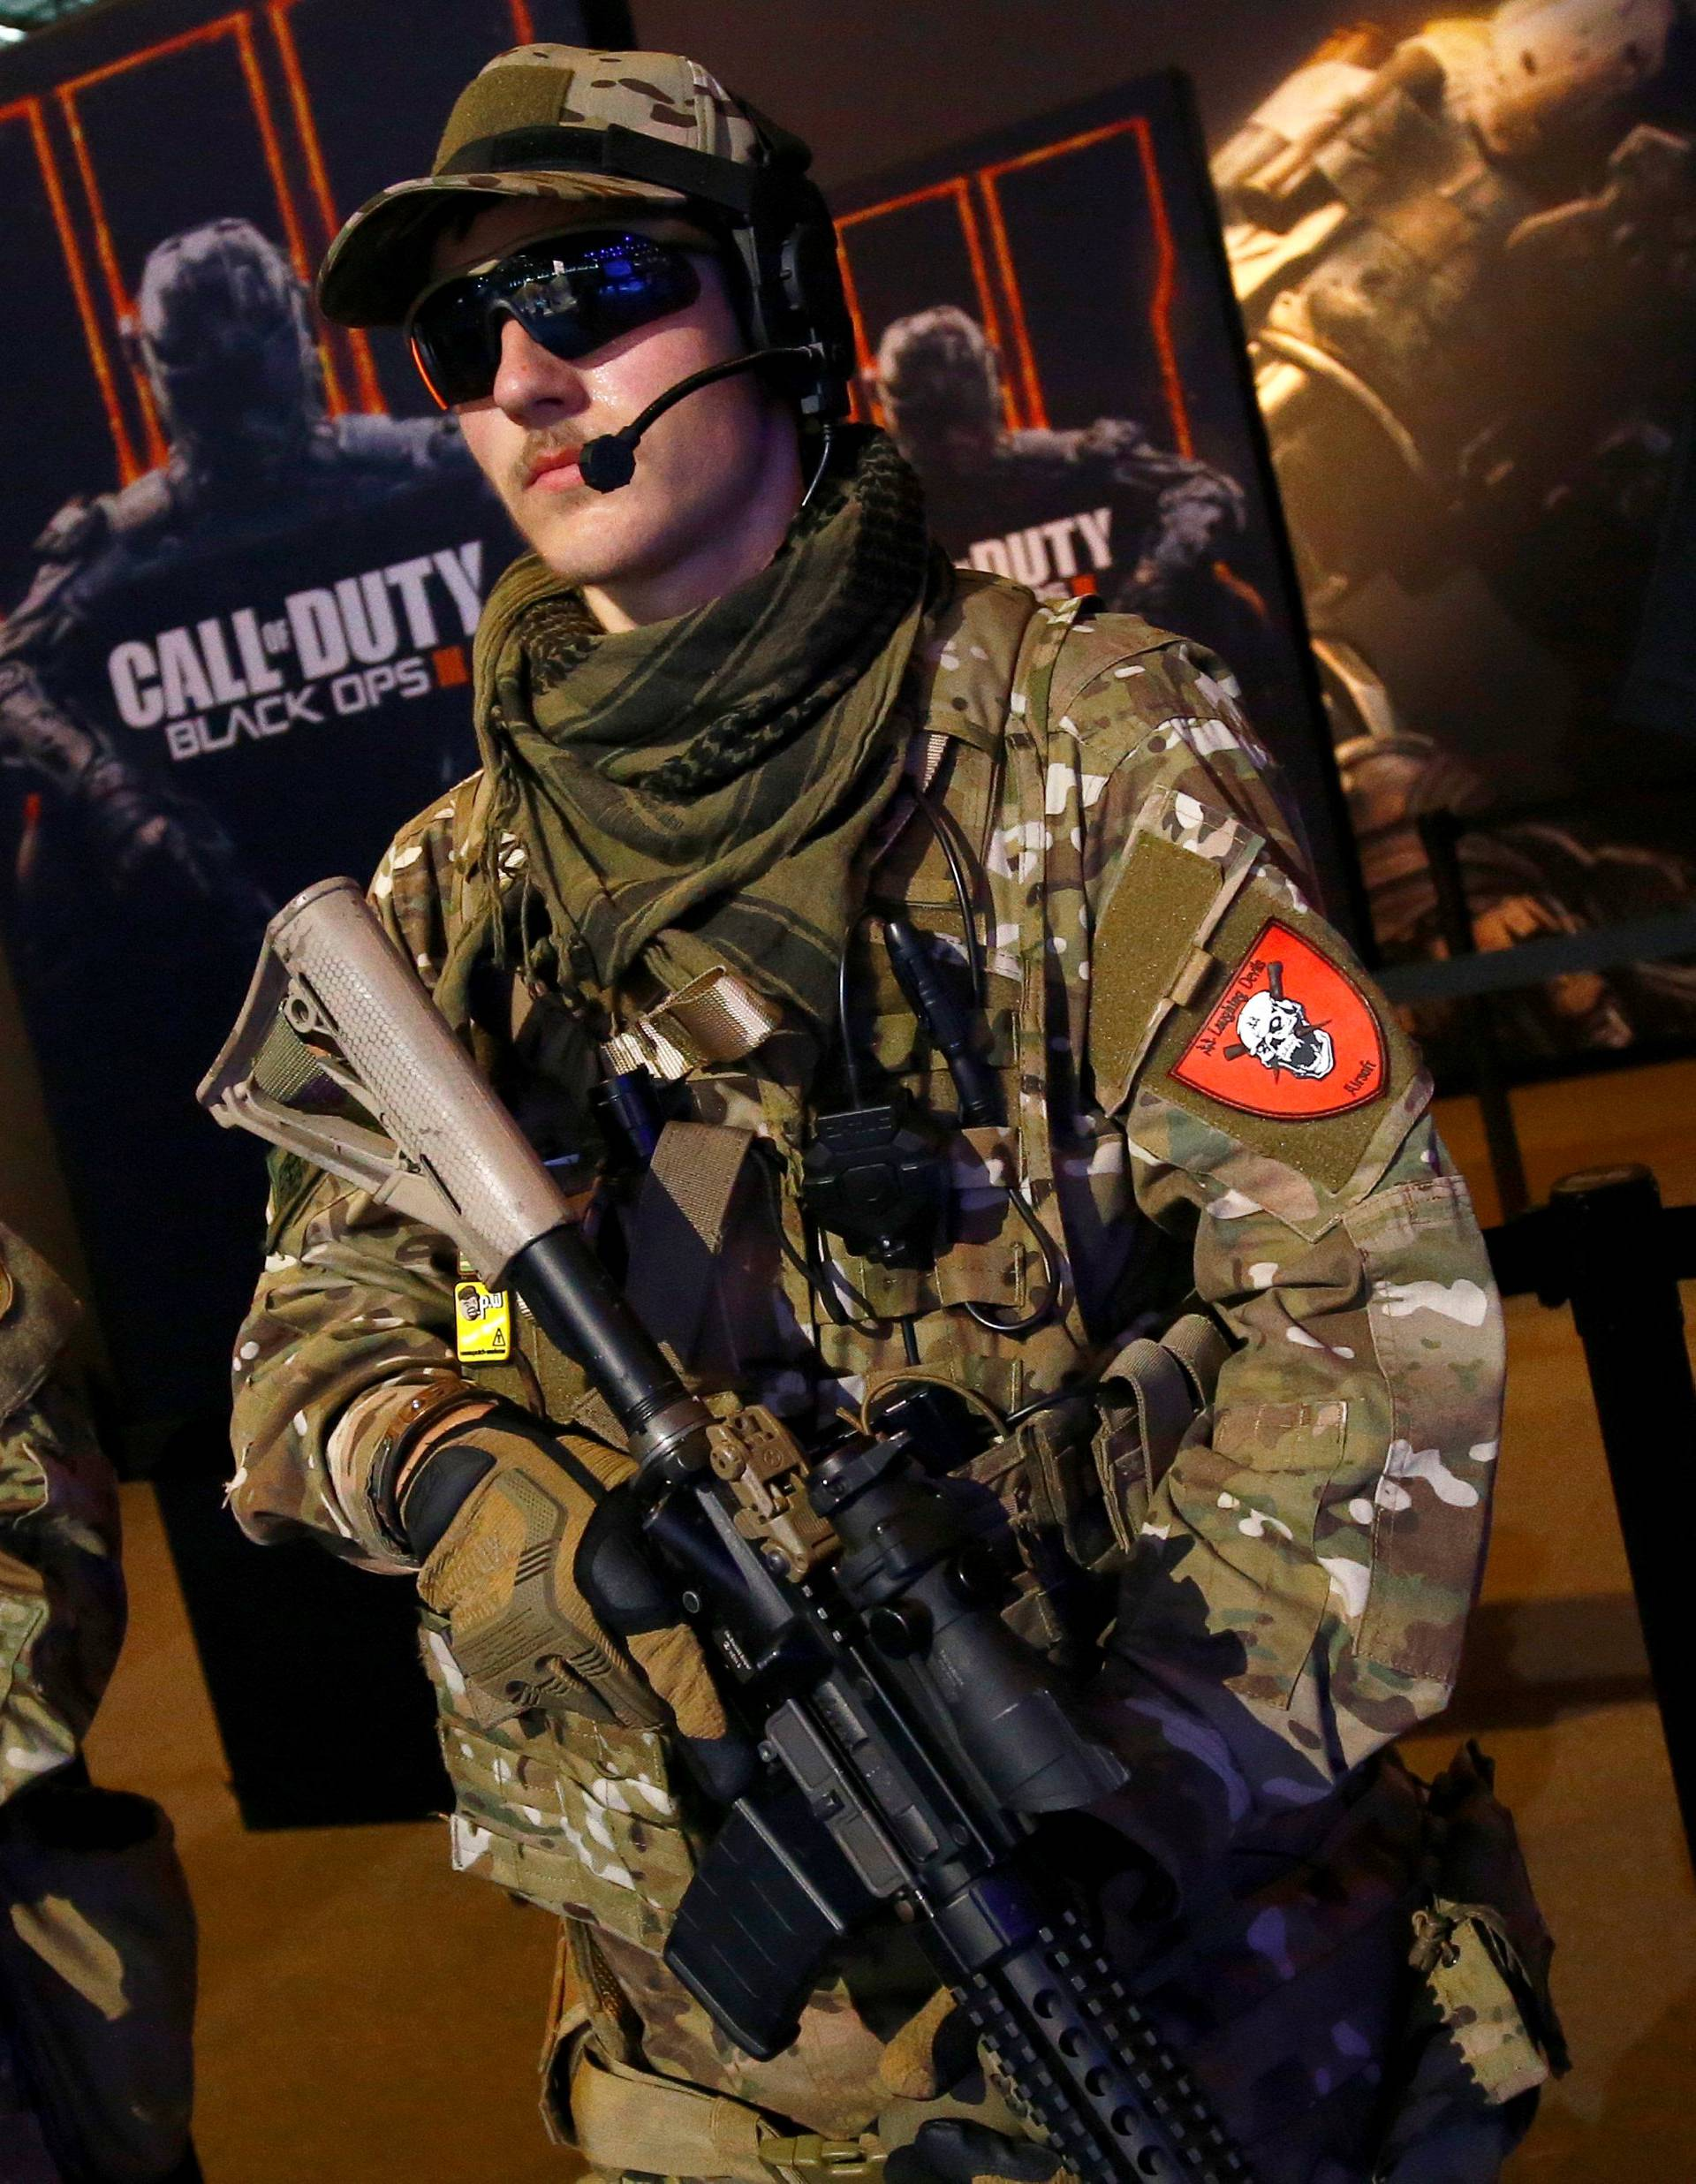 """Men are dressed as soldiers to promote the video game """"Call Of Duty Black Ops 3"""" at the Gamescom fair in Cologne"""